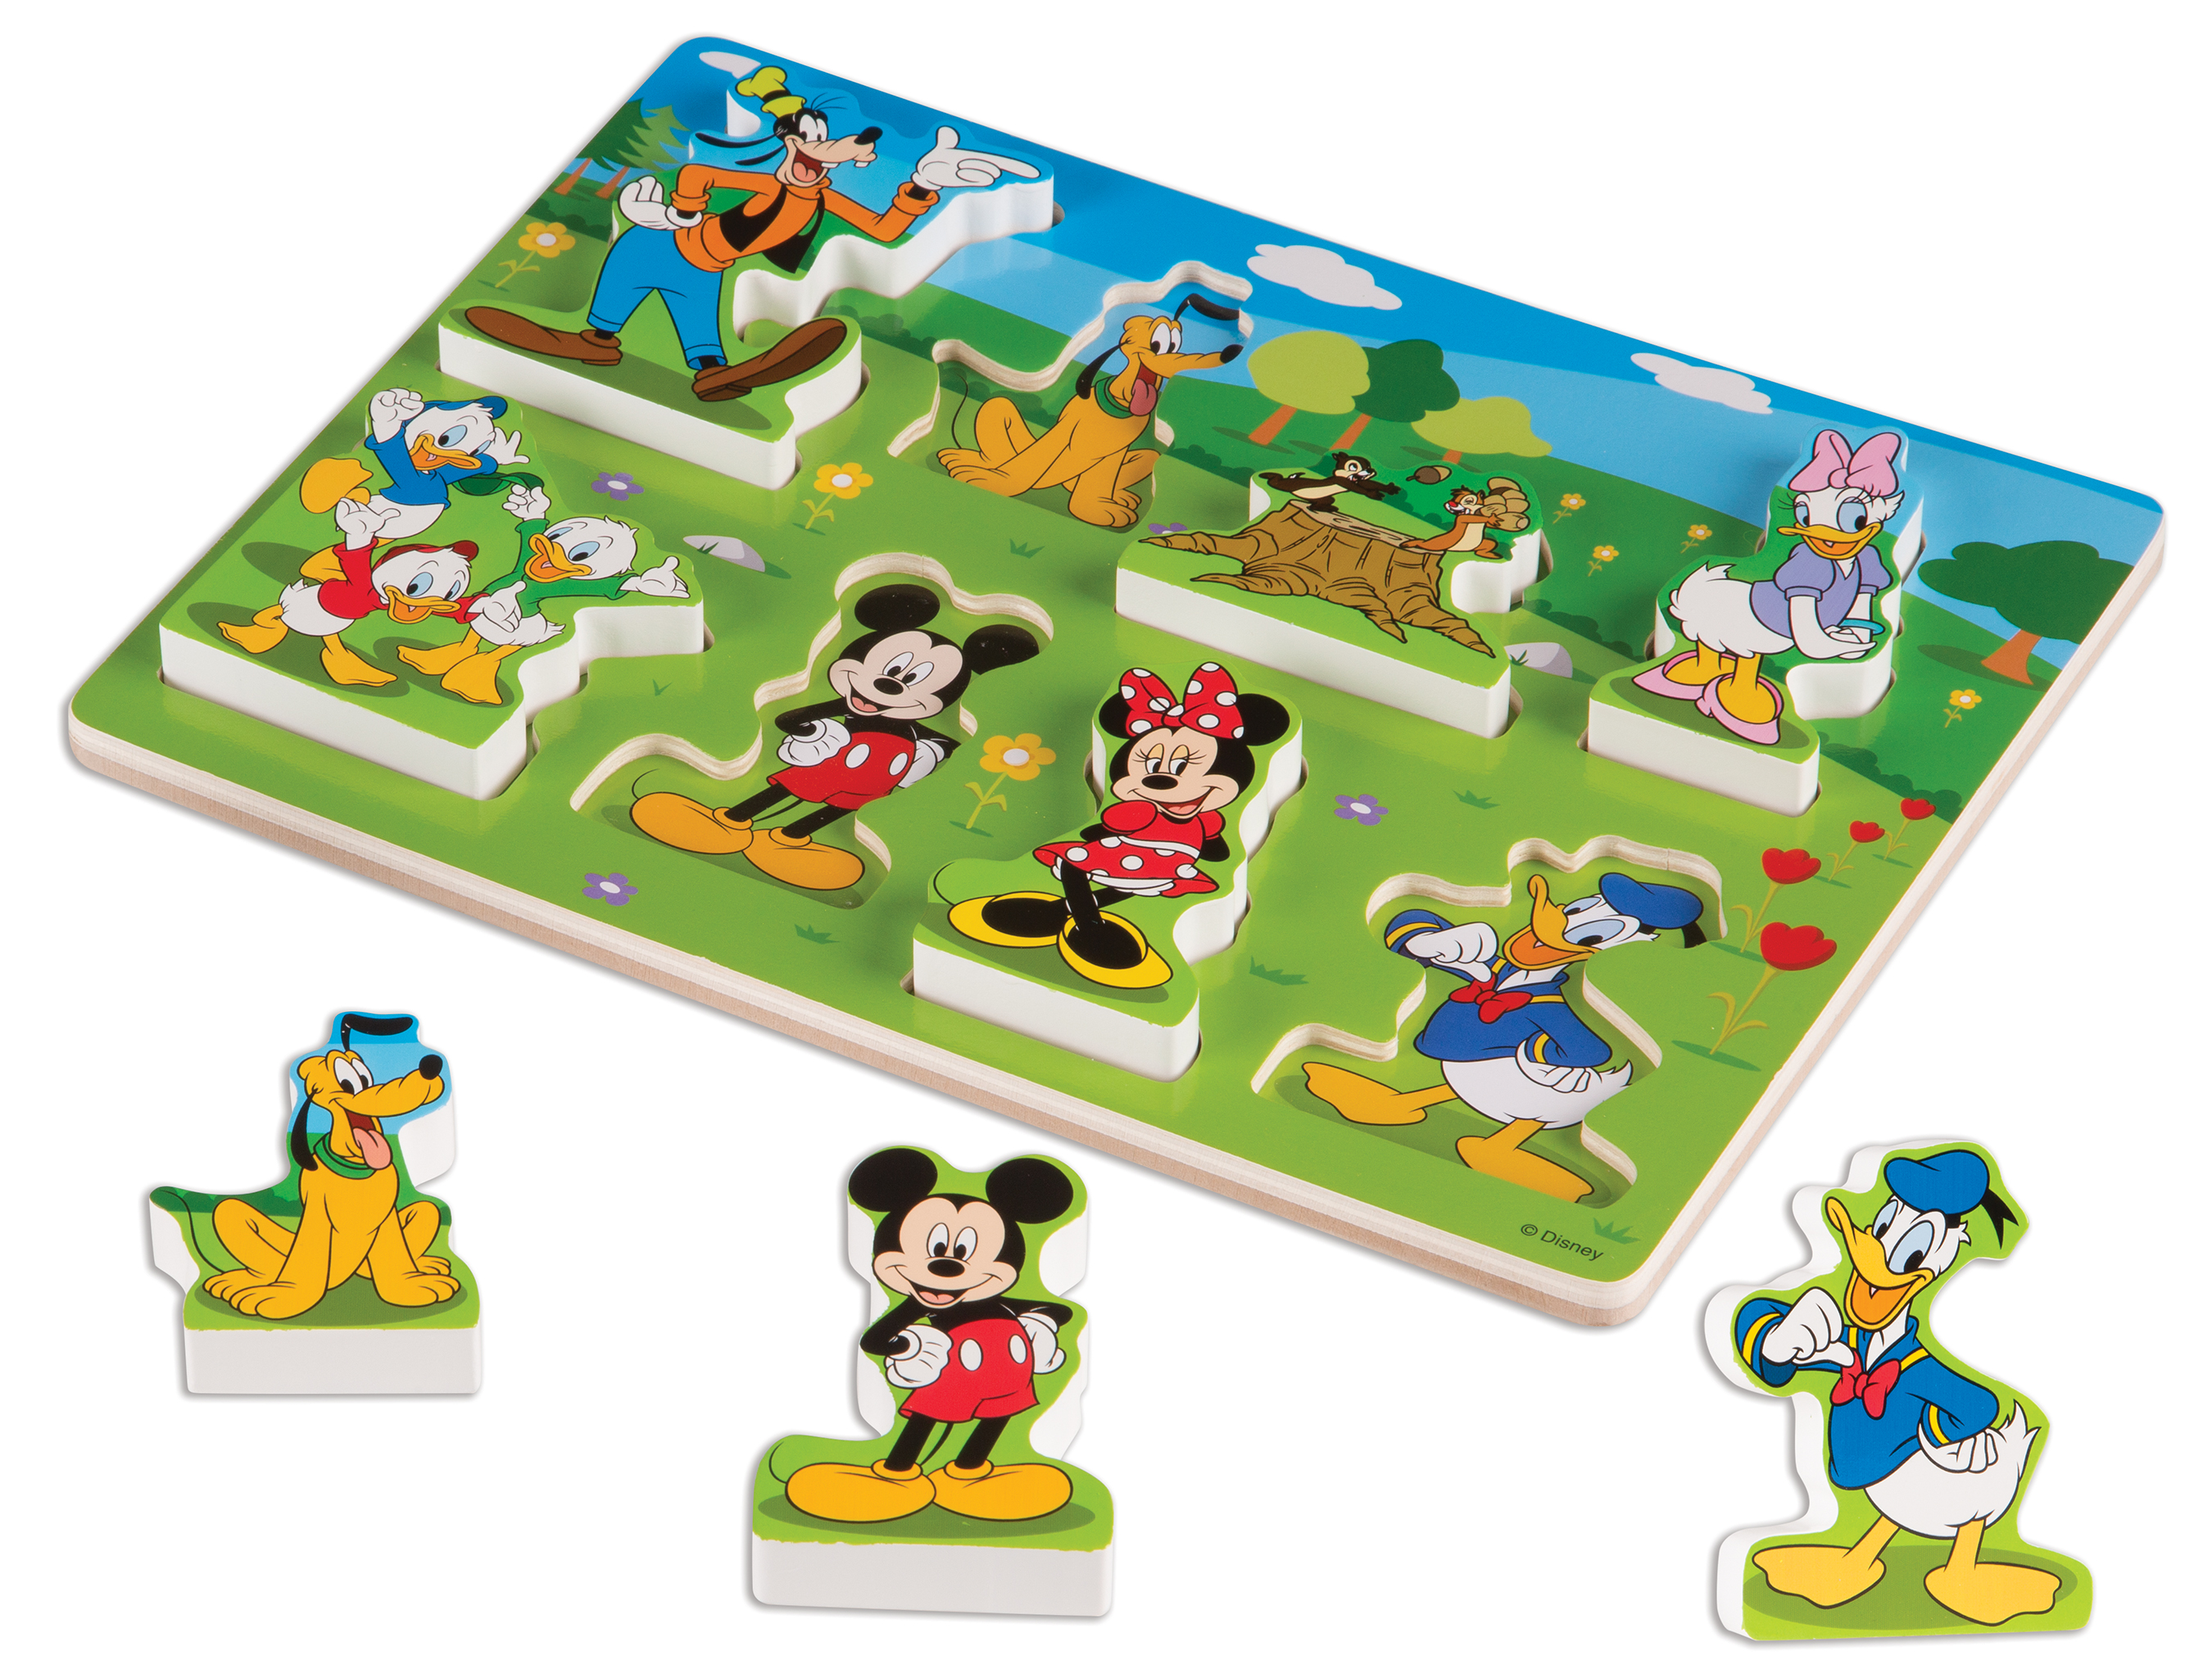 Disney Mickey Mouse Clubhouse Wooden Chunky Puzzle